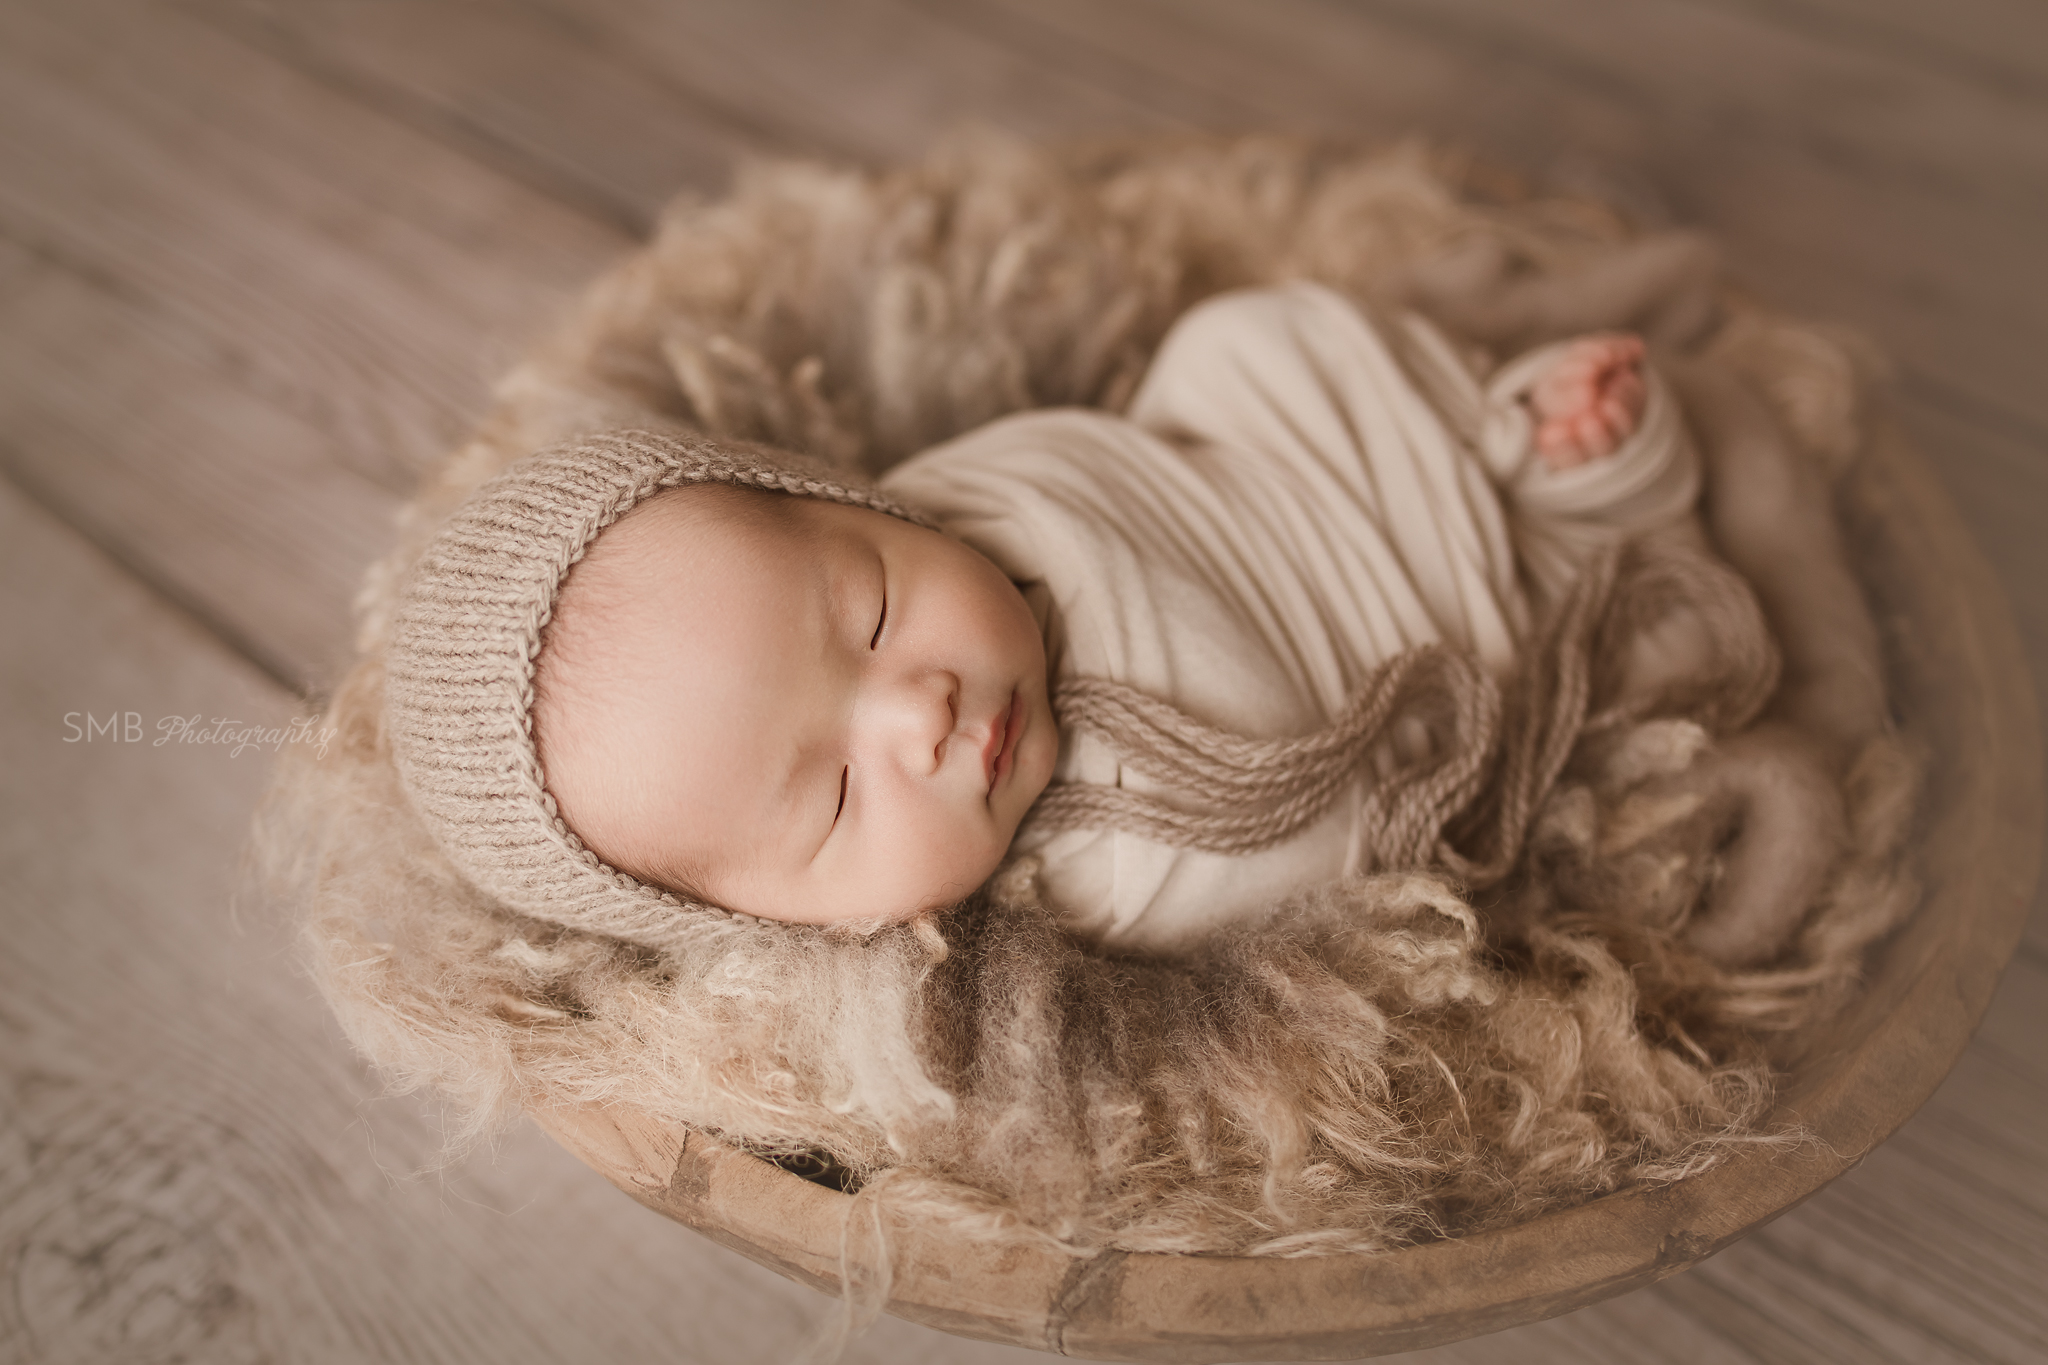 Newborn sleeping in large wood bowl